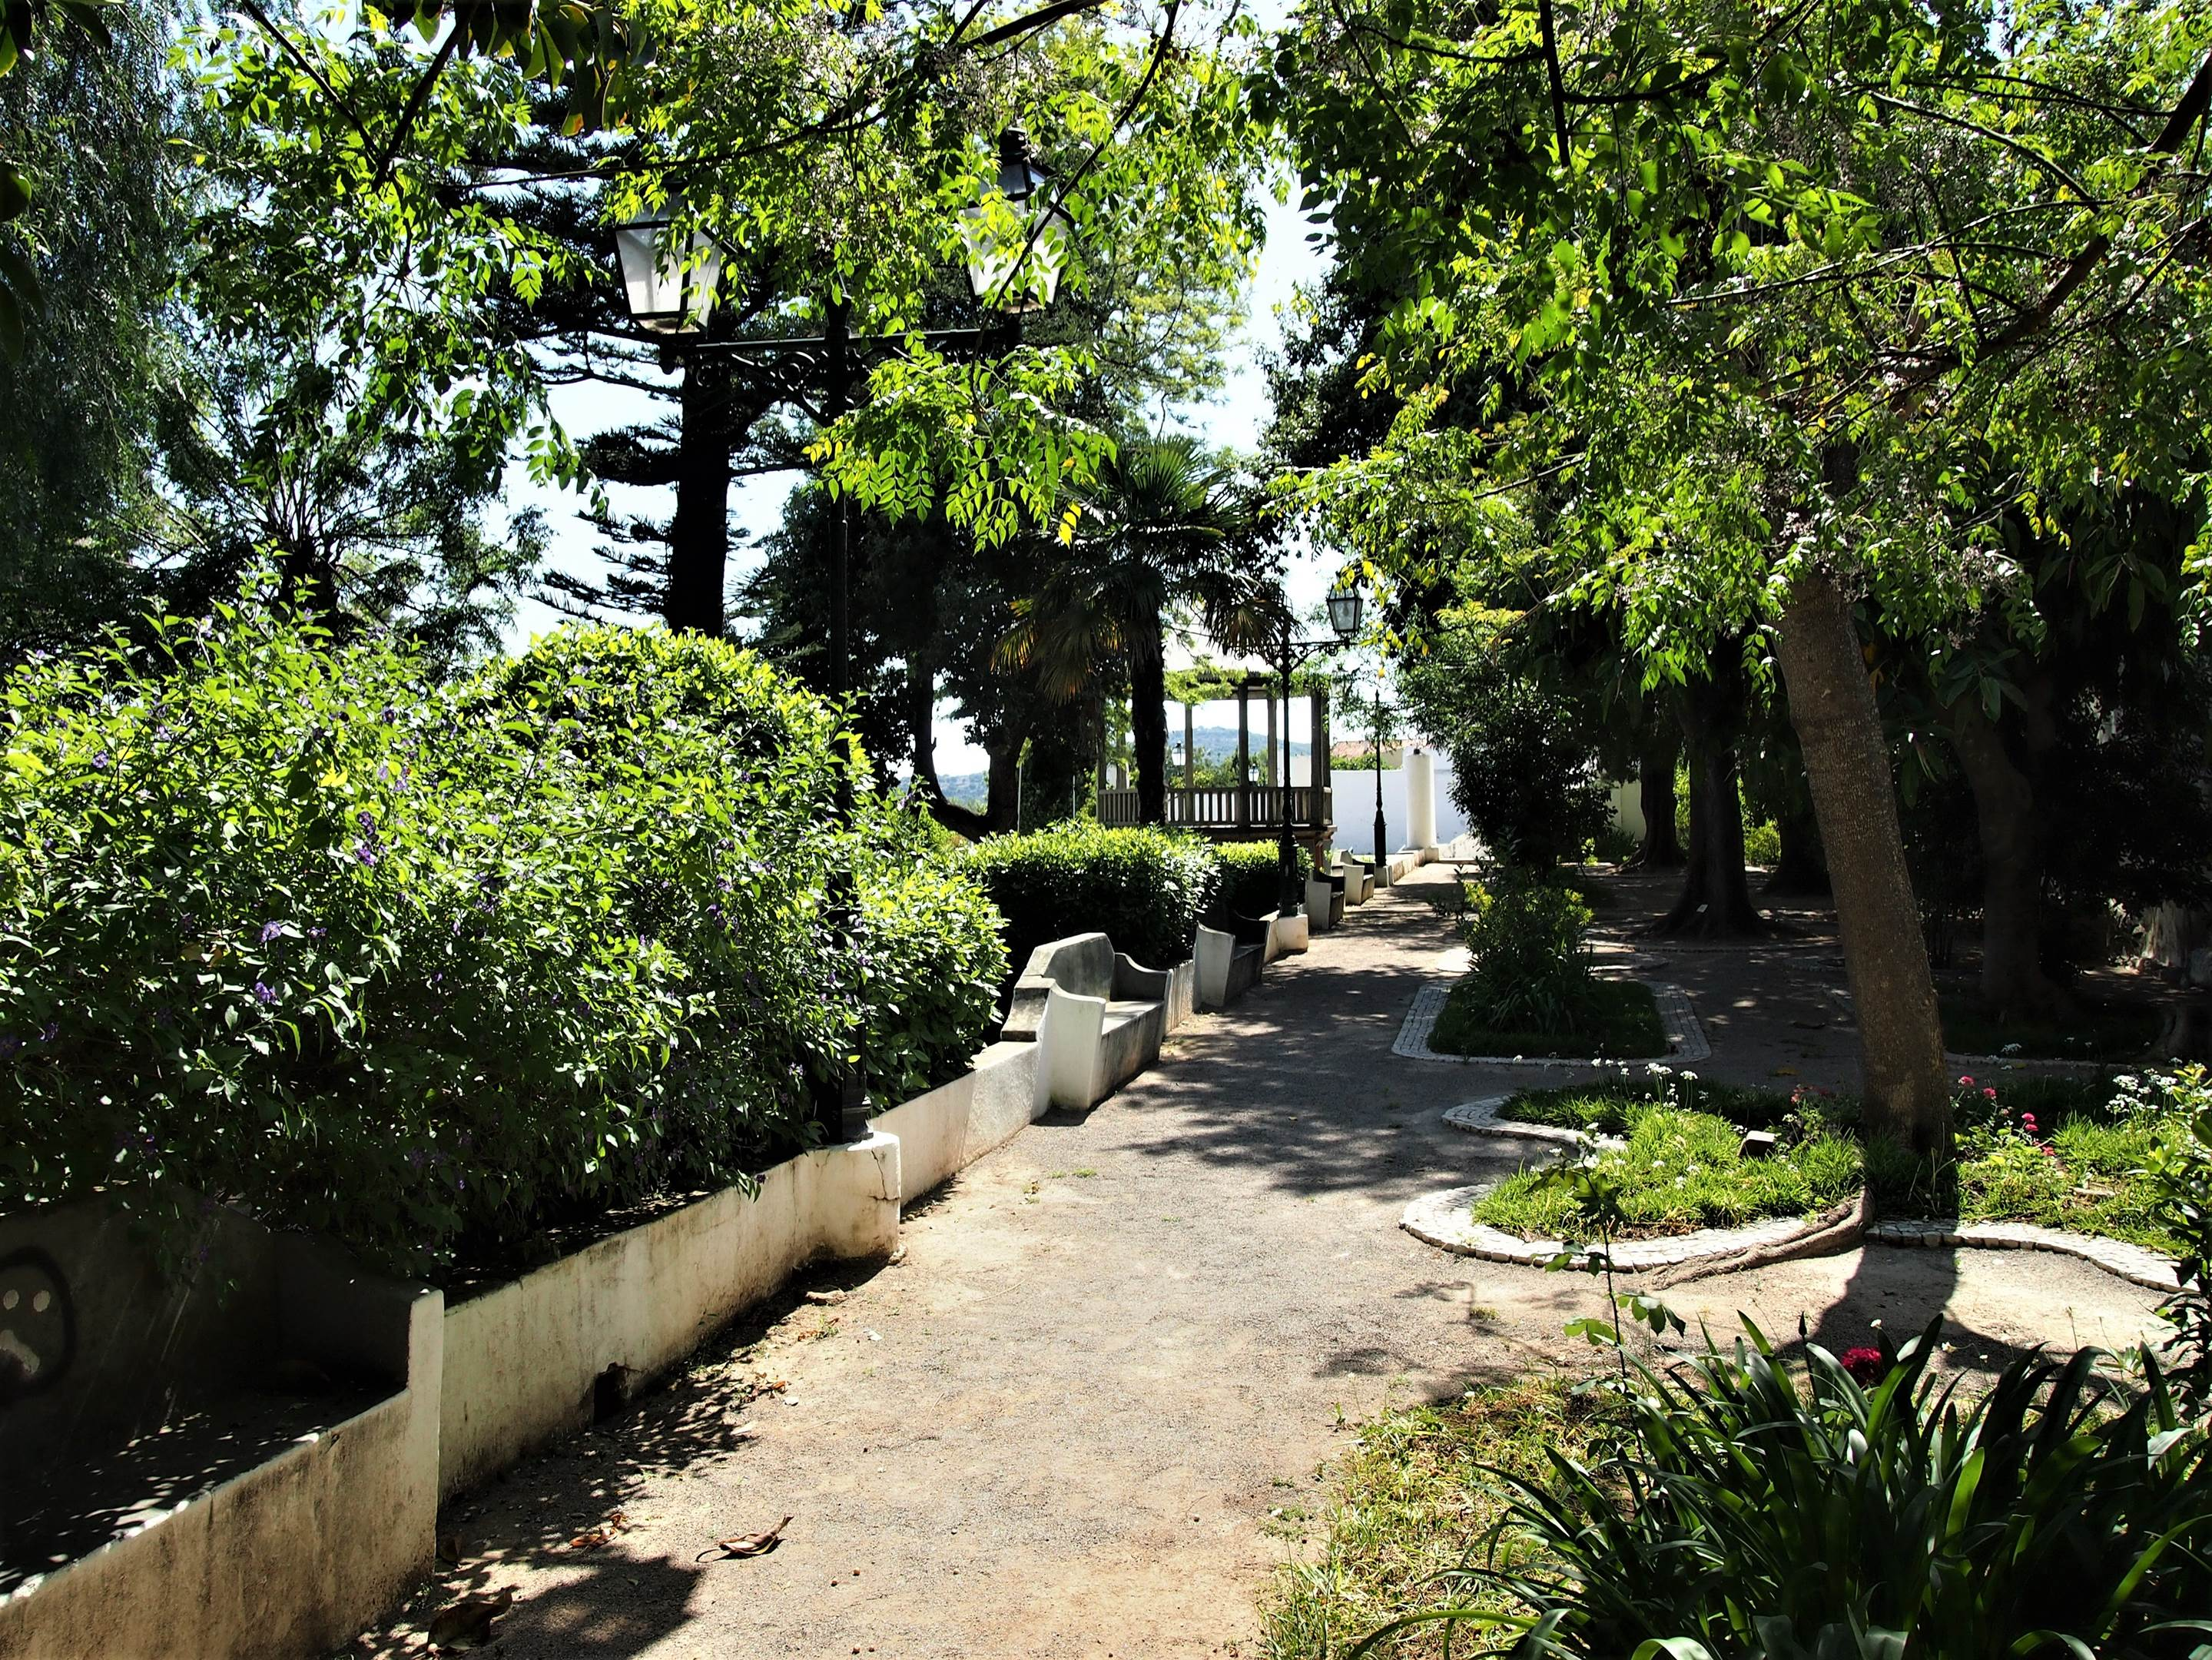 The Jardim da Verbena, São Brás de Alportel. The garden of a former Episcopal Palace with a bandstand in the background